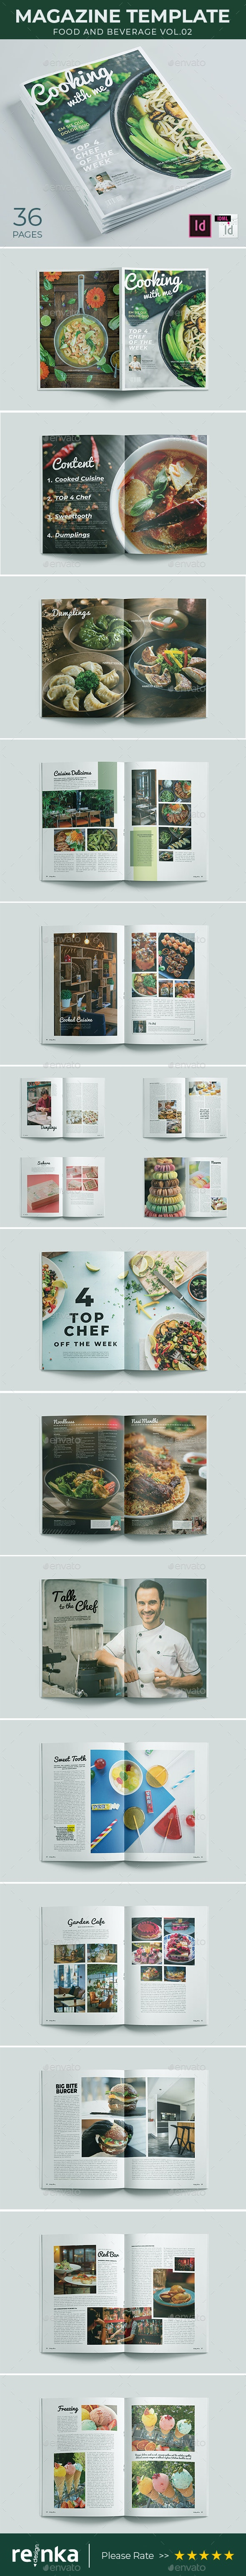 Magazine Template - Cooking with Me - Magazines Print Templates